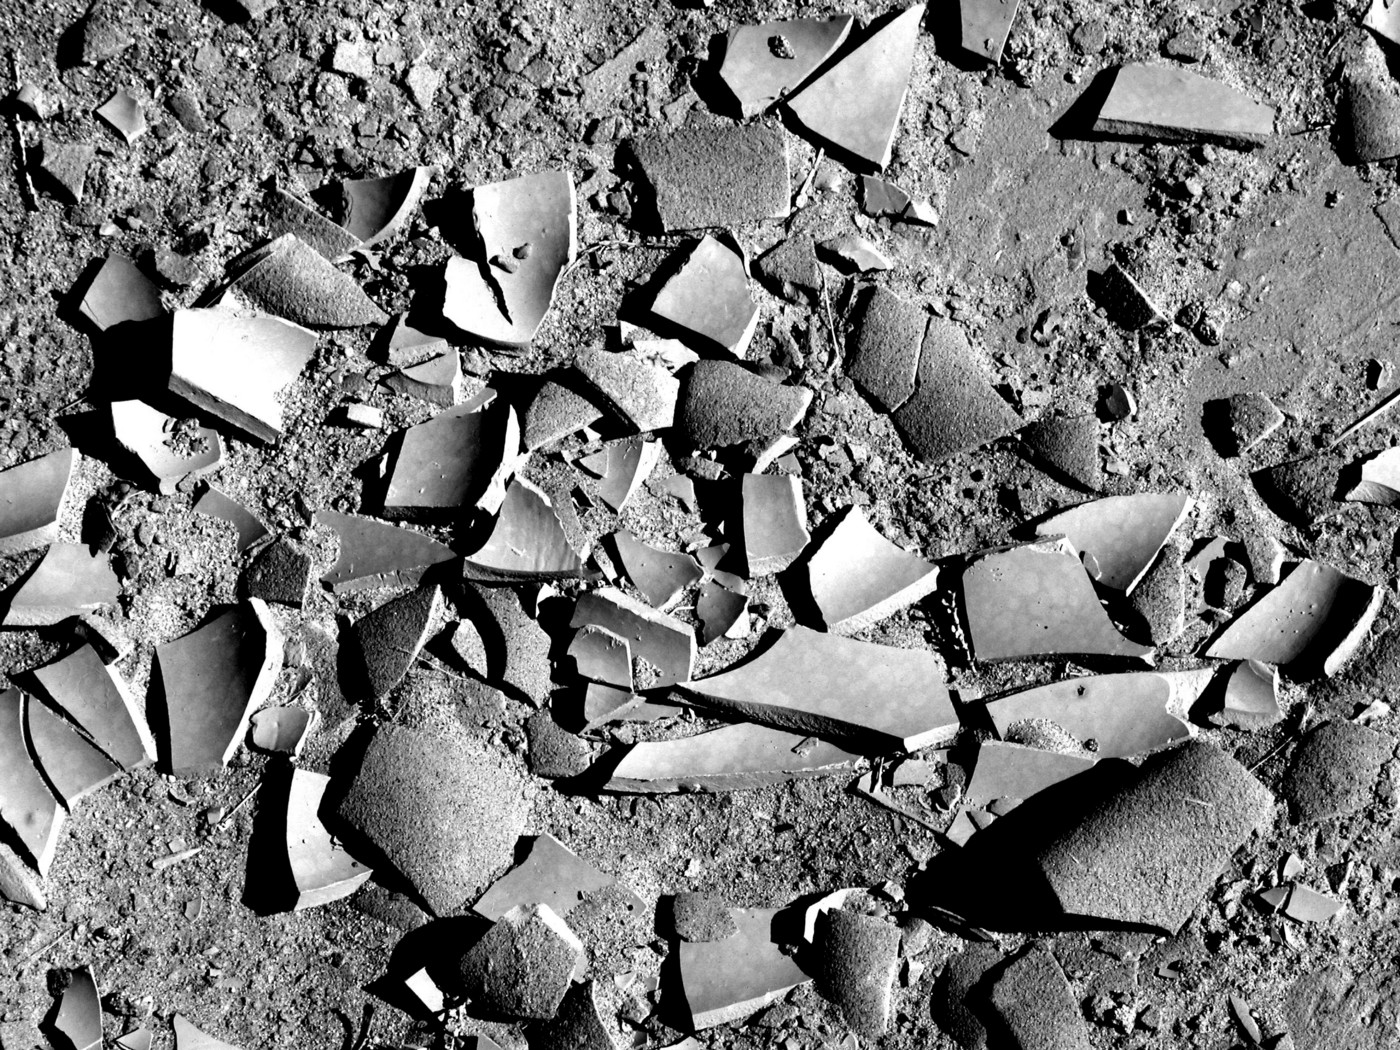 Black and white pottery shards. Fragment by Rena Willis